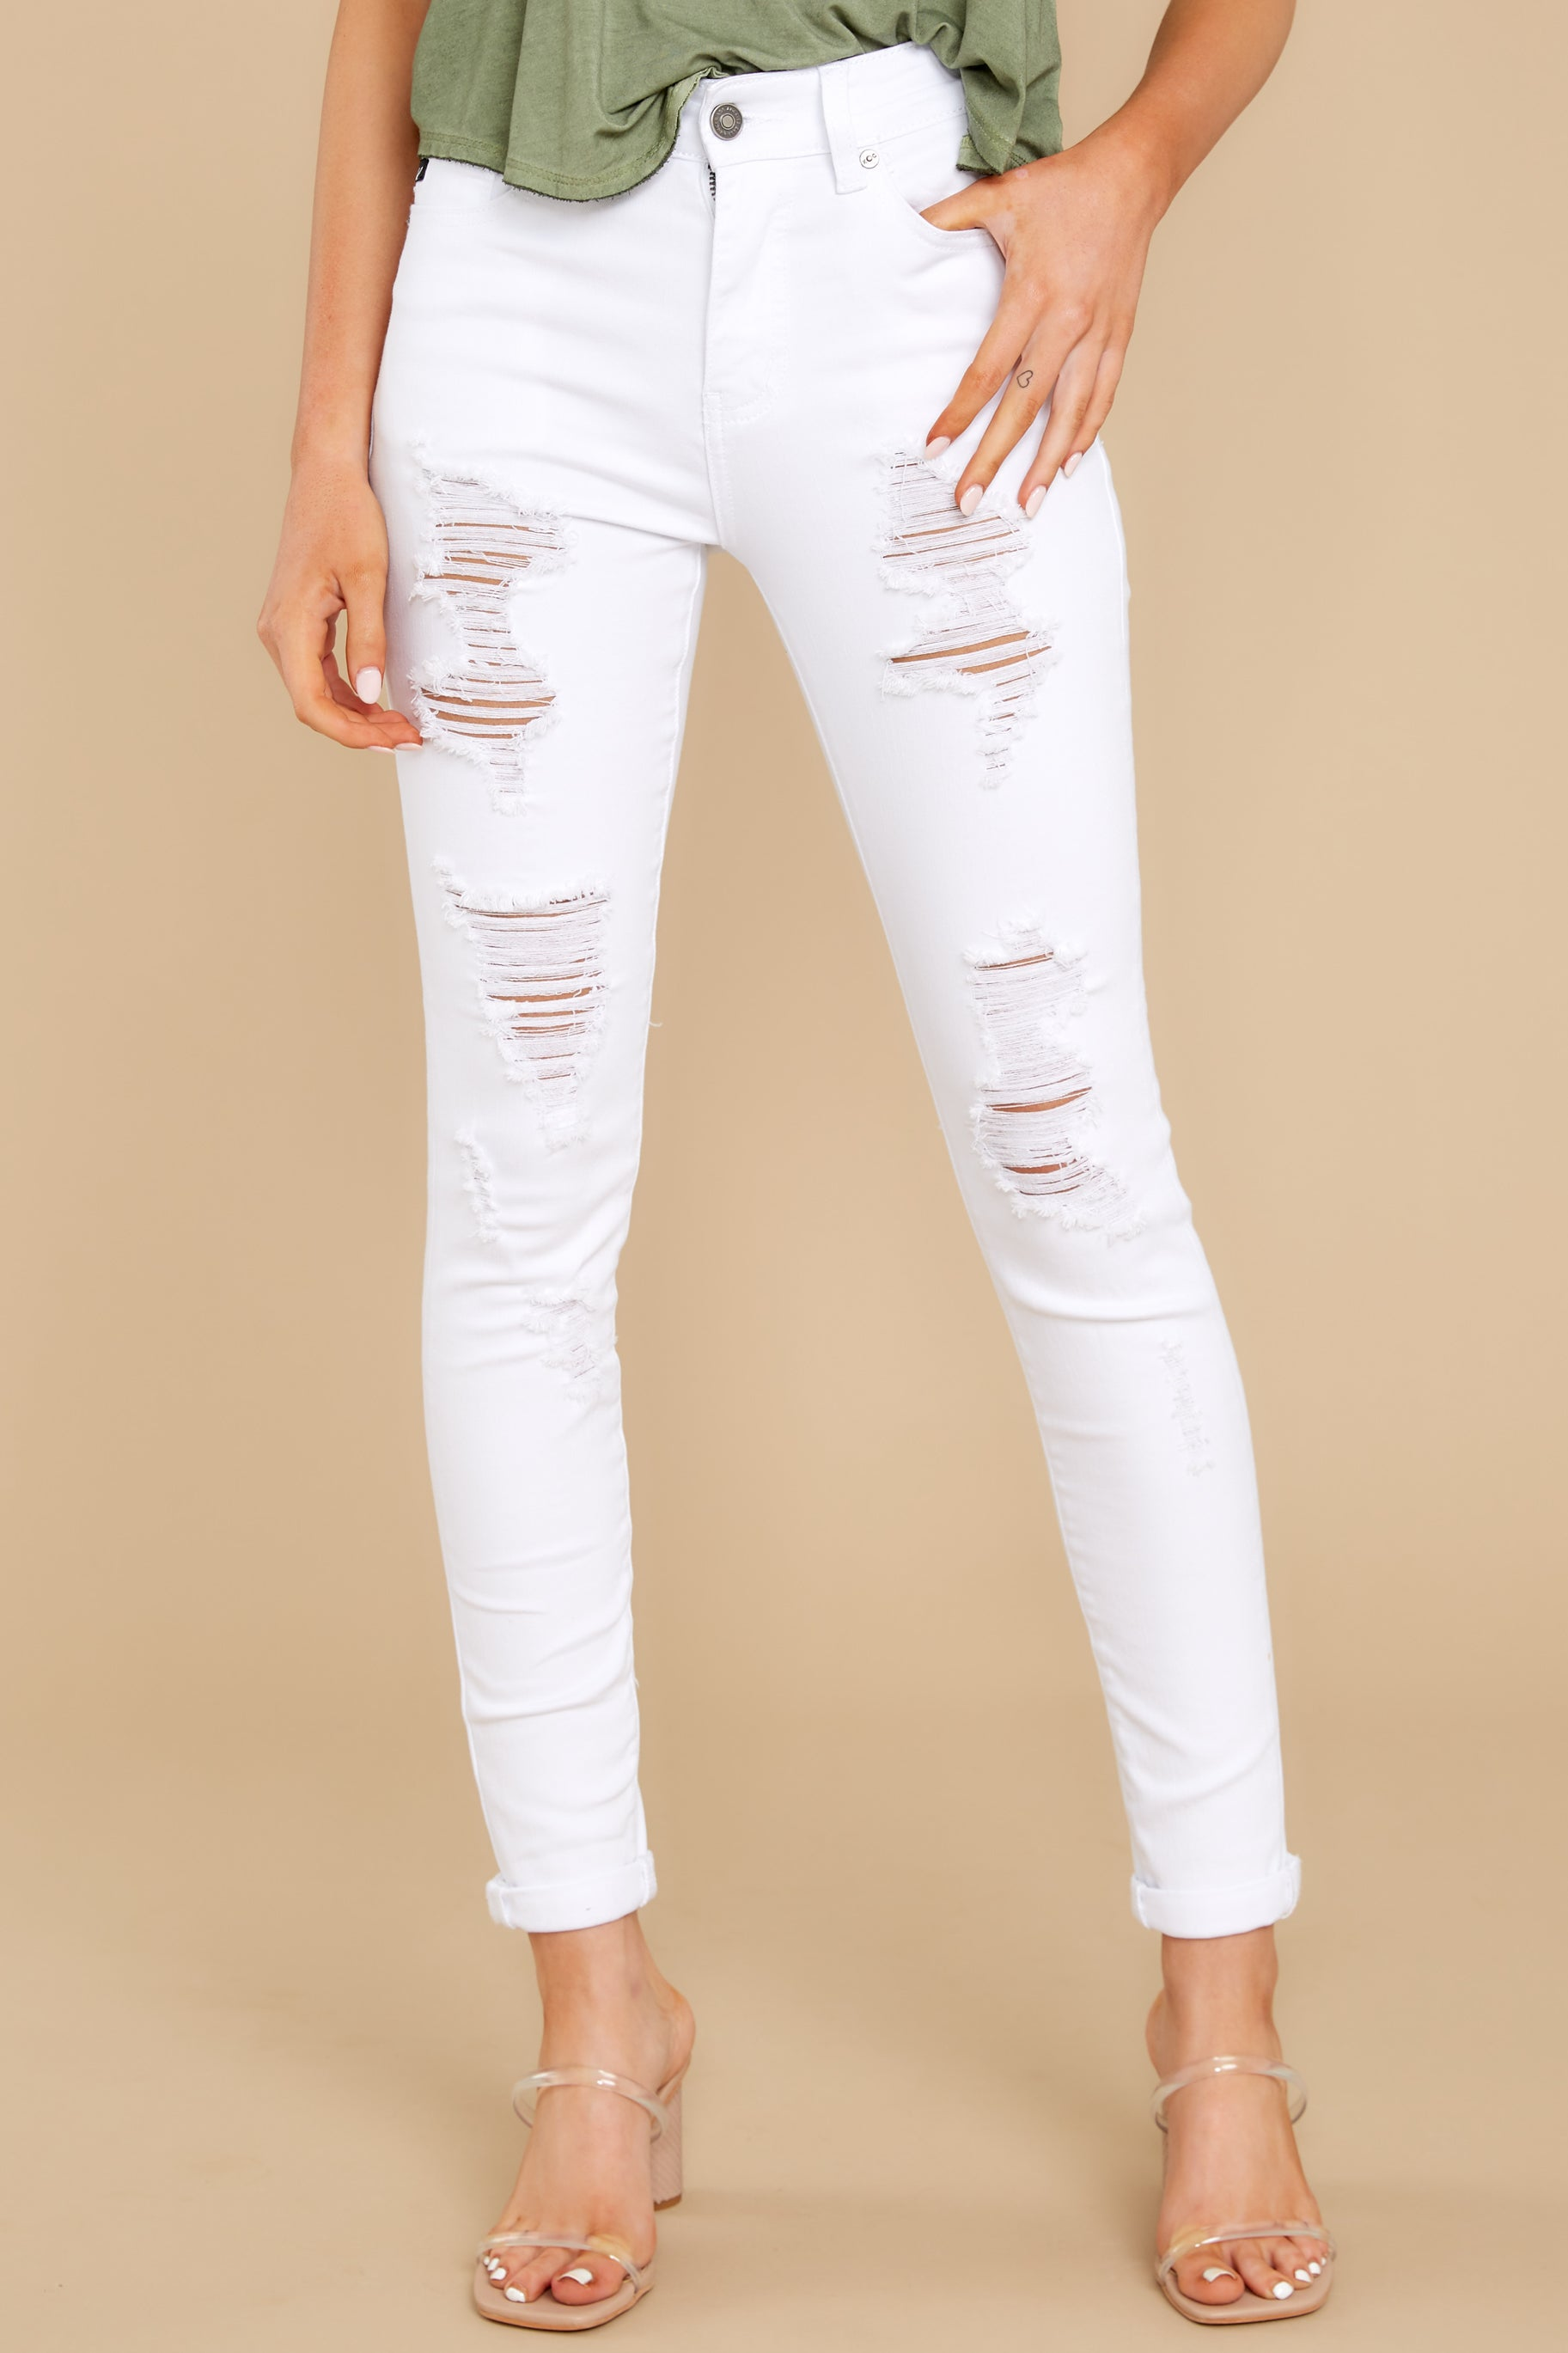 2 Told You White Distressed Skinny Jeans at reddress.com